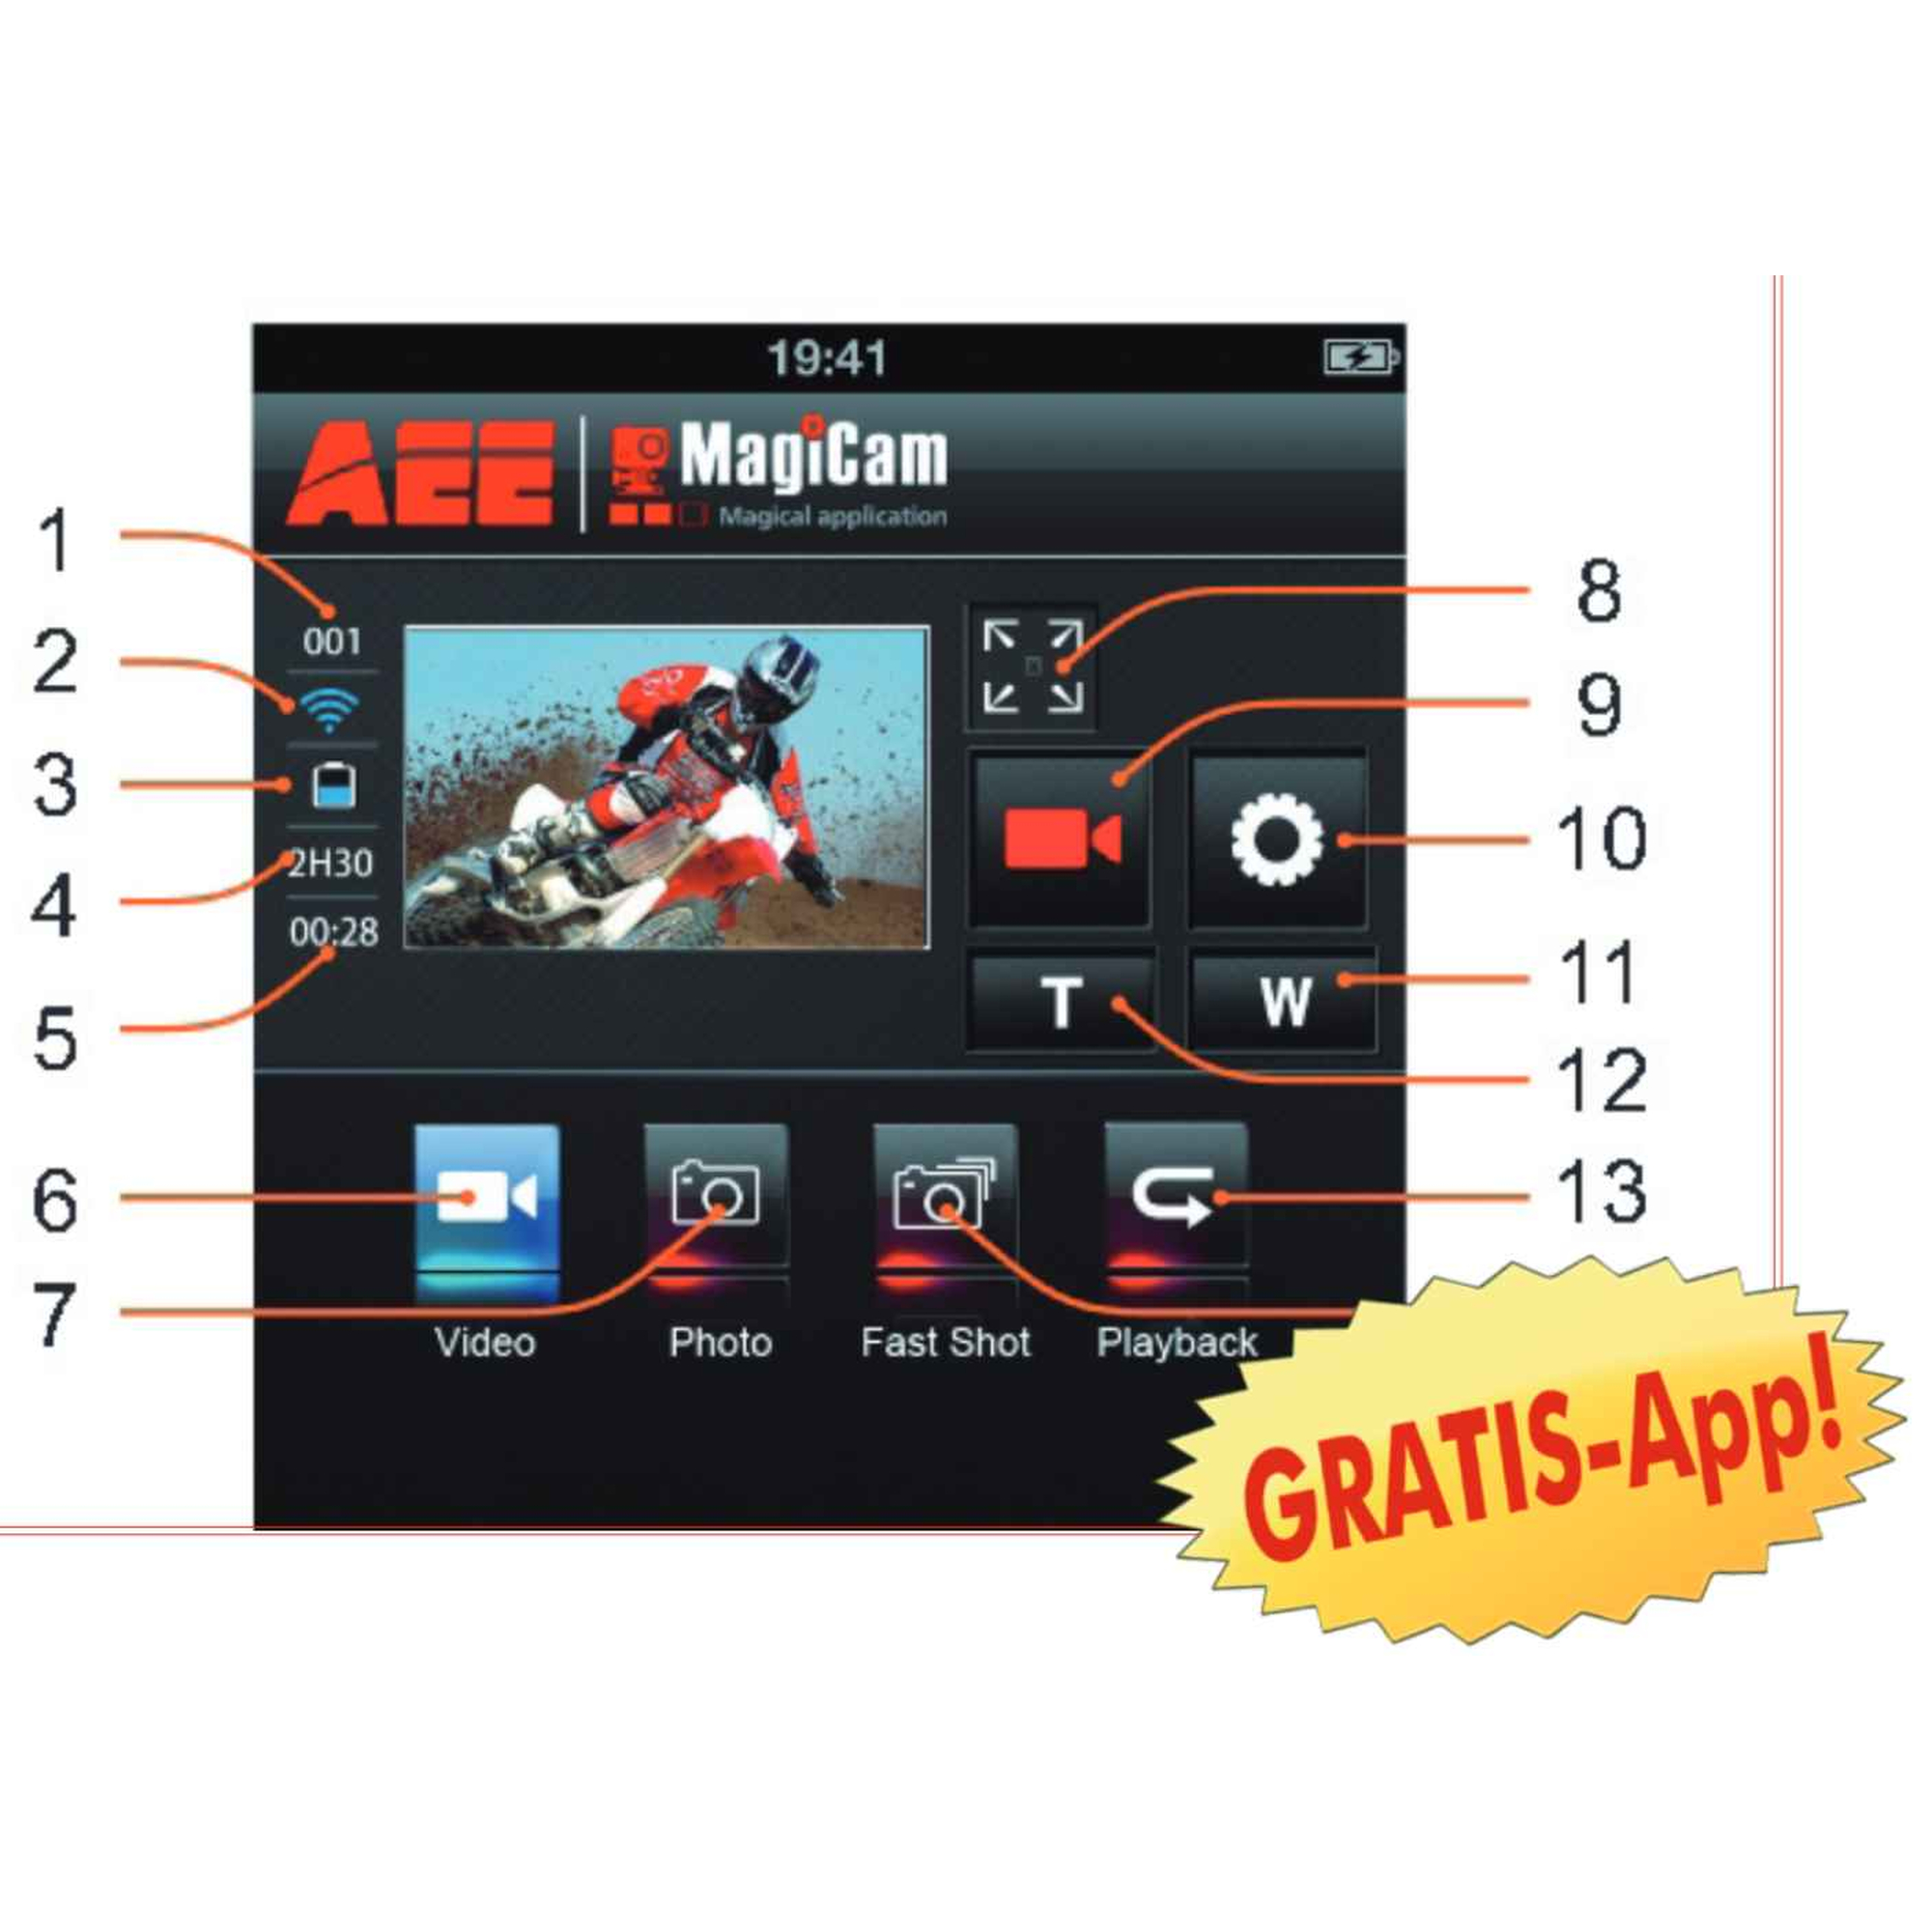 AEE ActionCam Magicam S71T Touch 4K UHD WLAN #wieneu